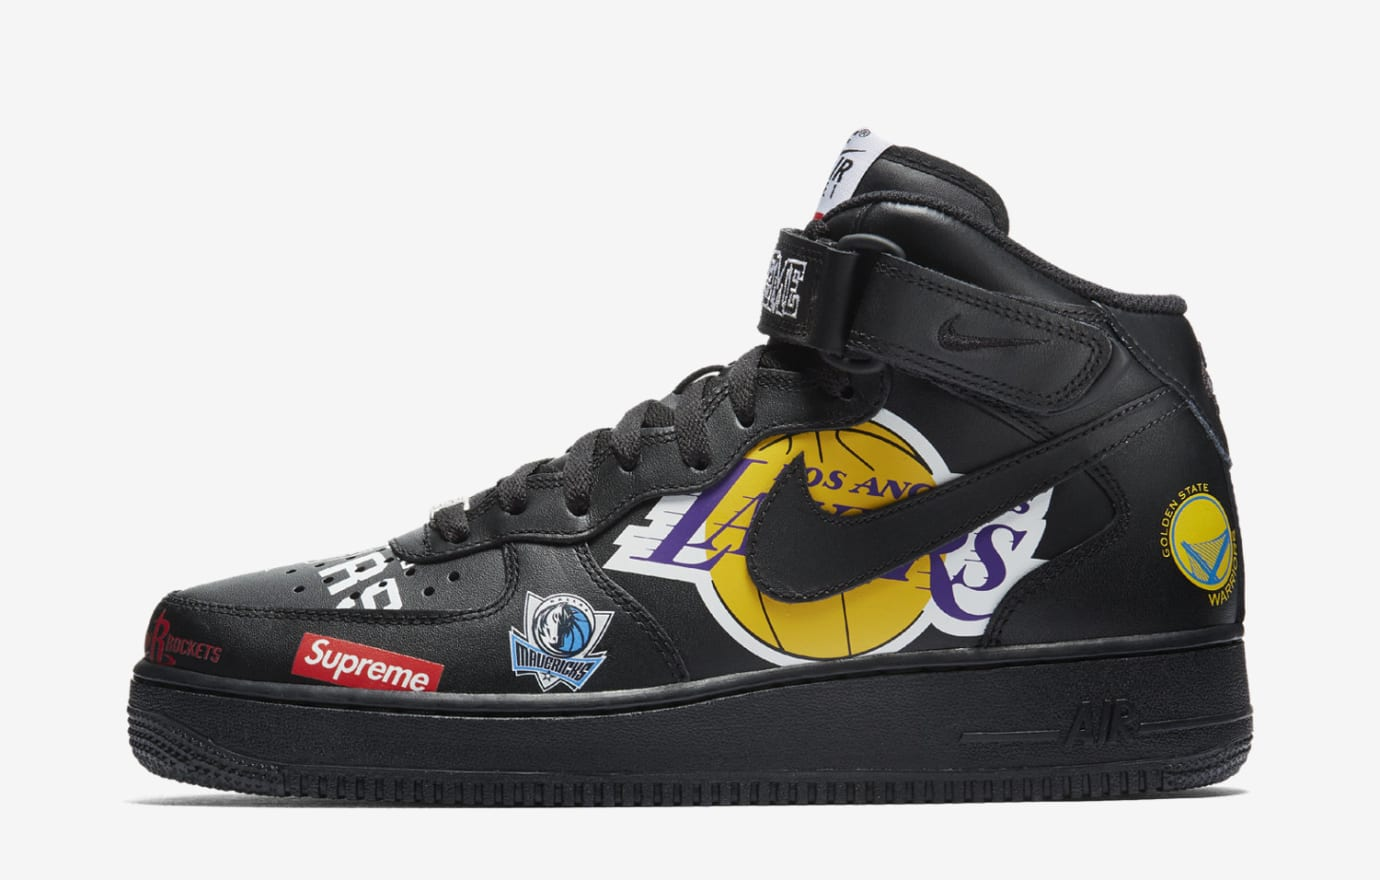 1 Force ReleaseSole Air Mid Collector X Nba Supreme Snkrs Nike K1FlcJ